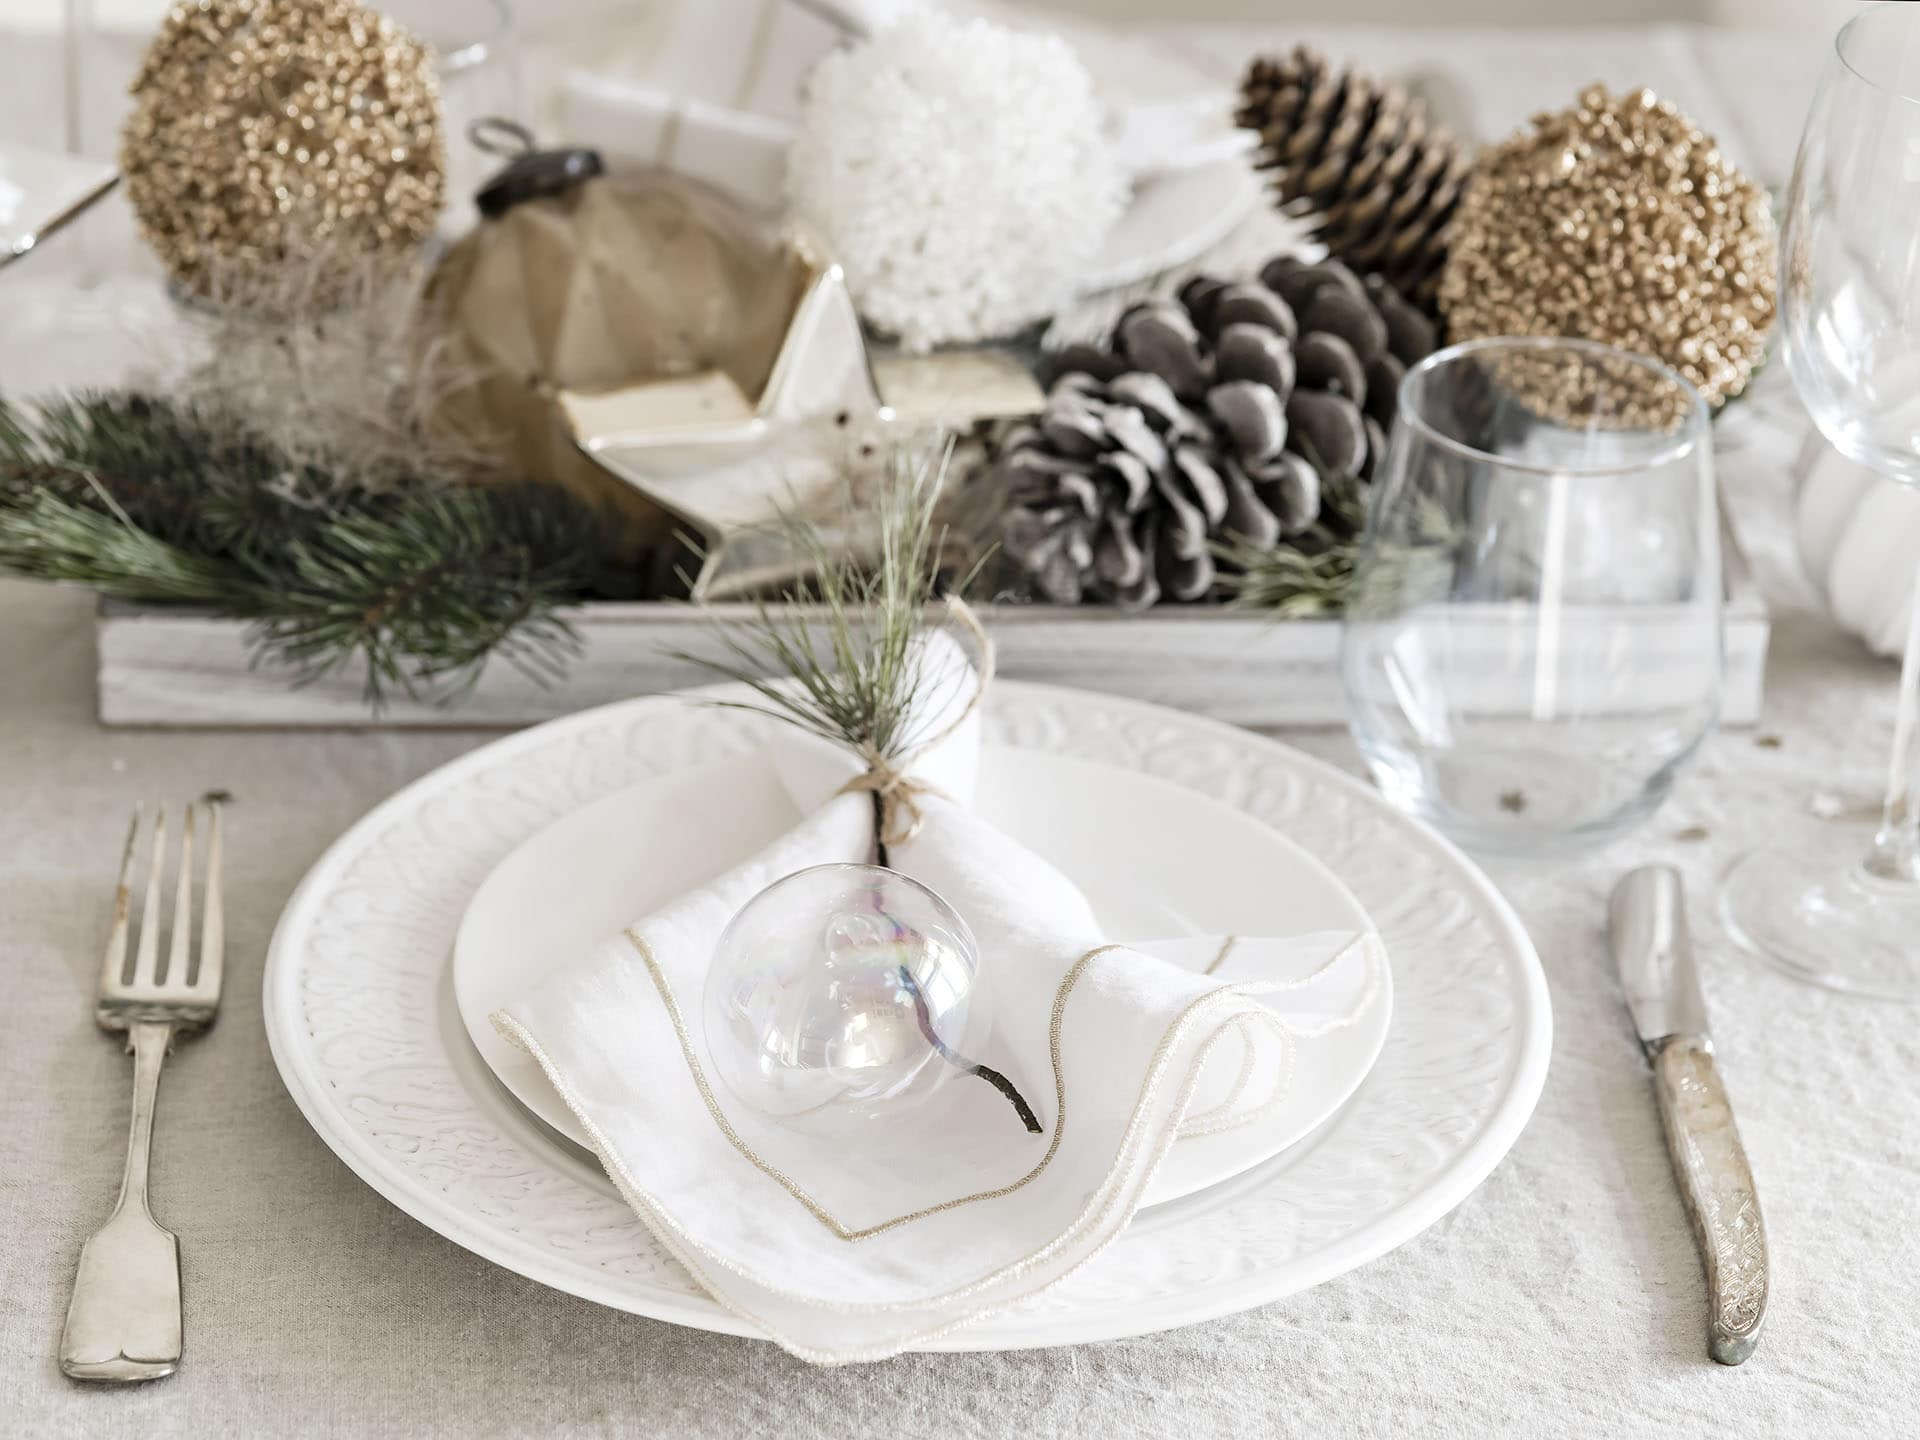 Plate and cutlery near New Year decorations.